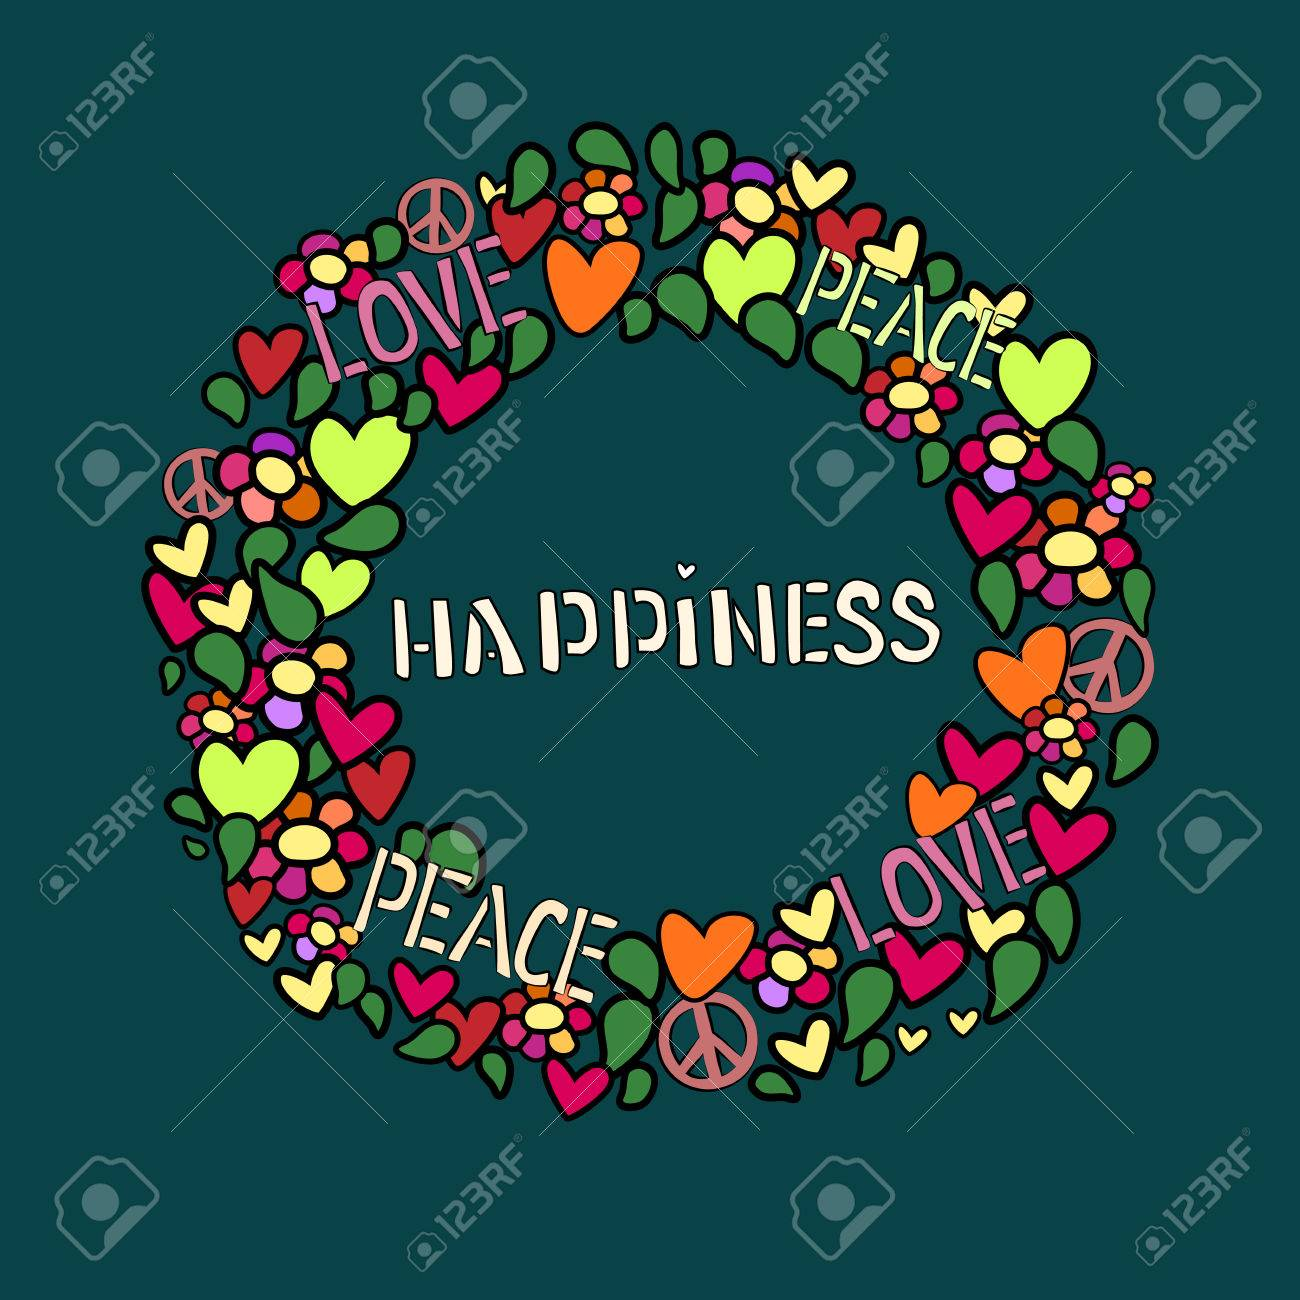 Text happiness in round frame love peace and pacifism symbol text happiness in round frame love peace and pacifism symbol in colorfull collage biocorpaavc Image collections